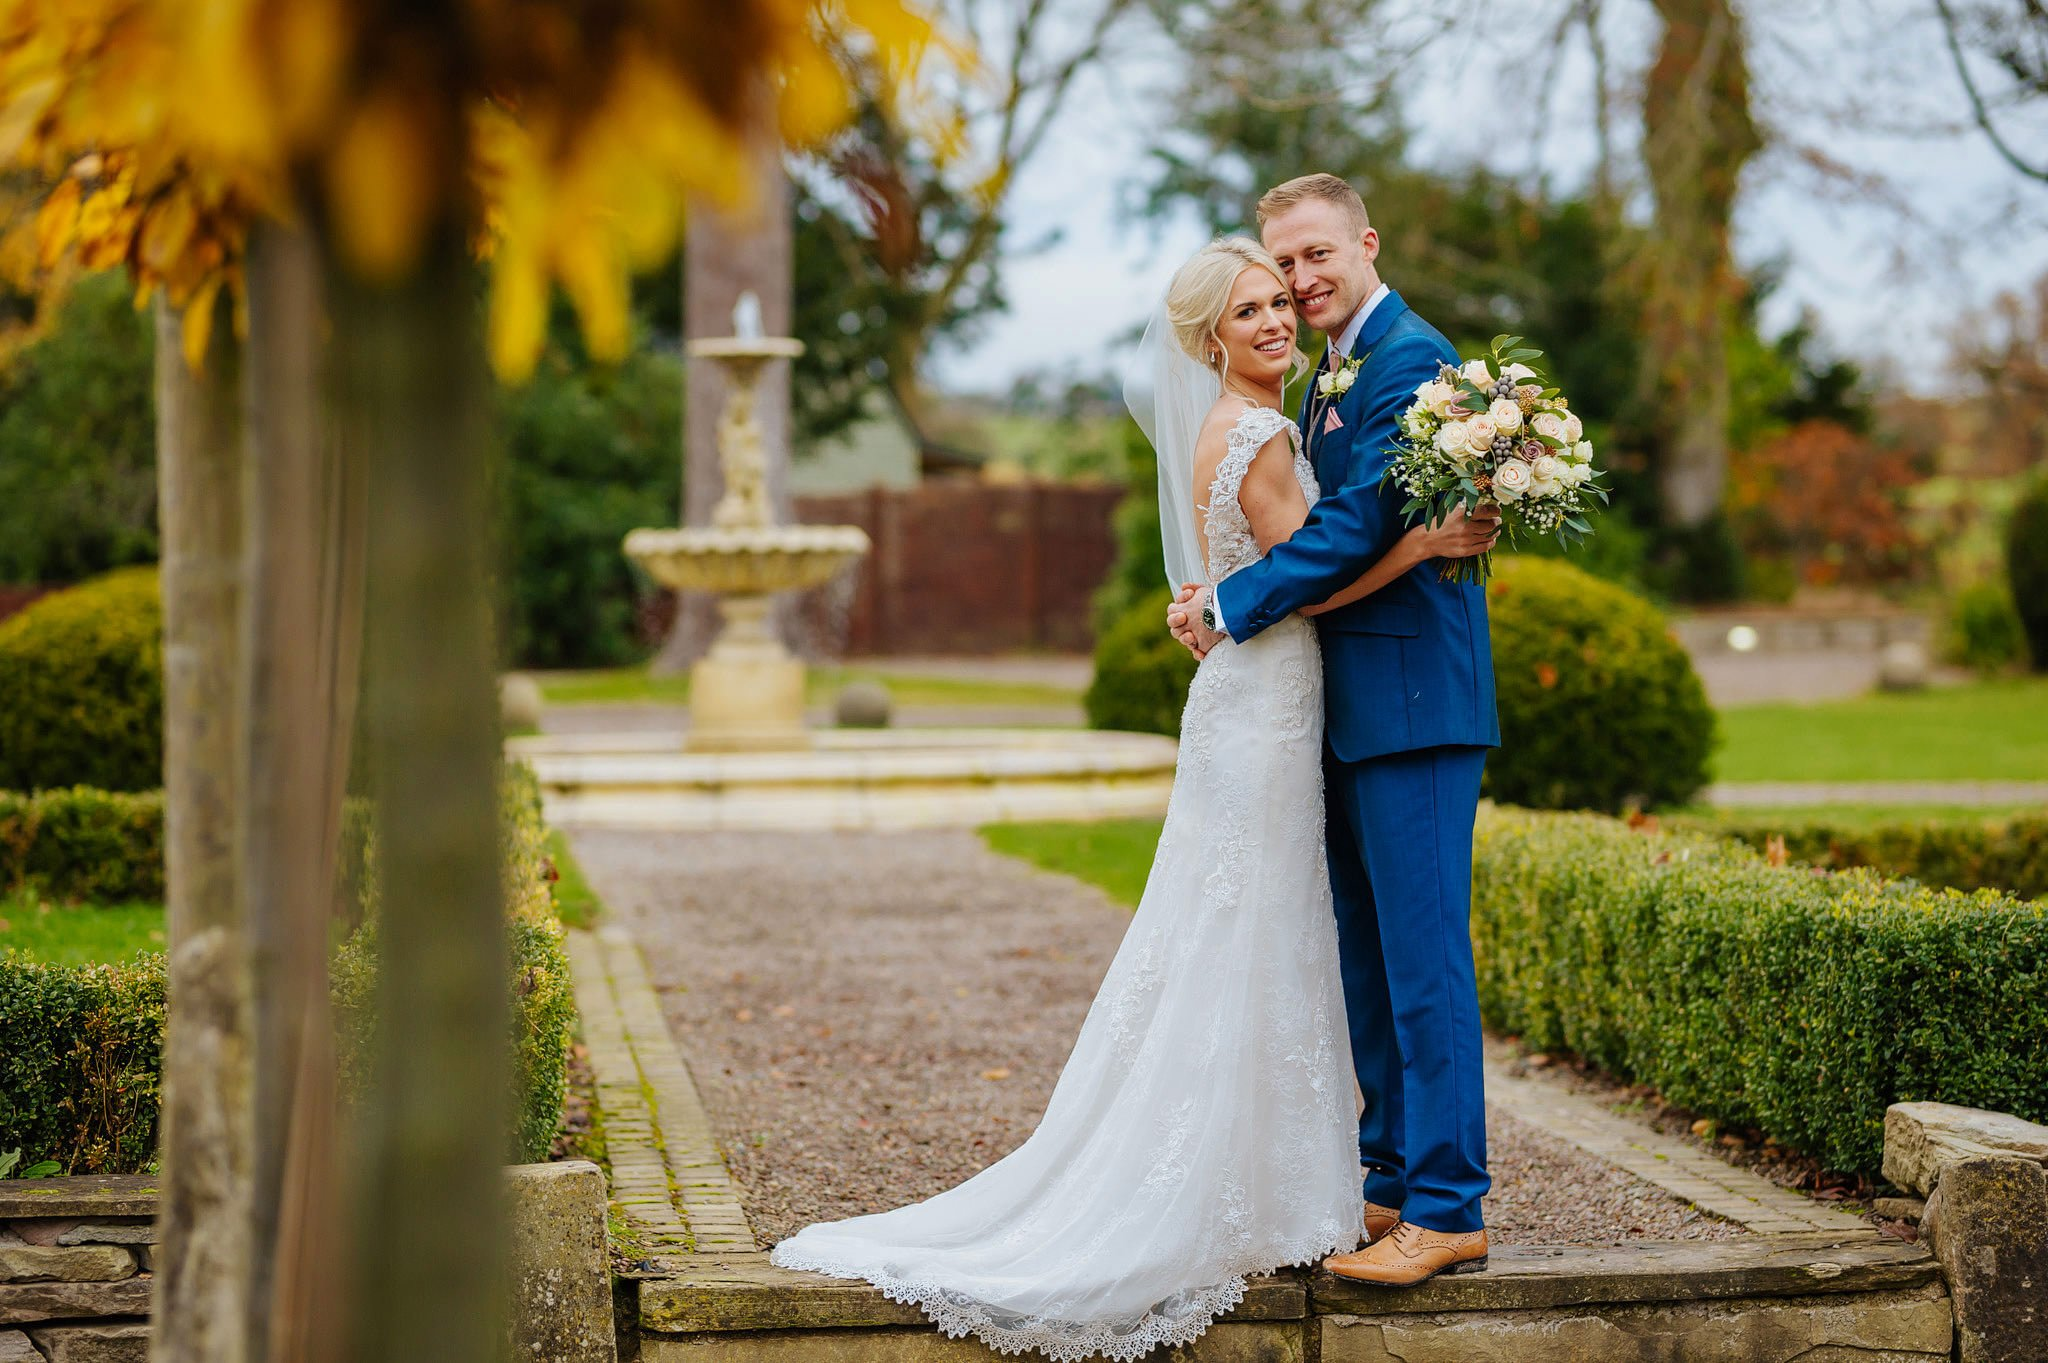 Sigma 85mm F1.4 ART review vs Wedding Photography 7